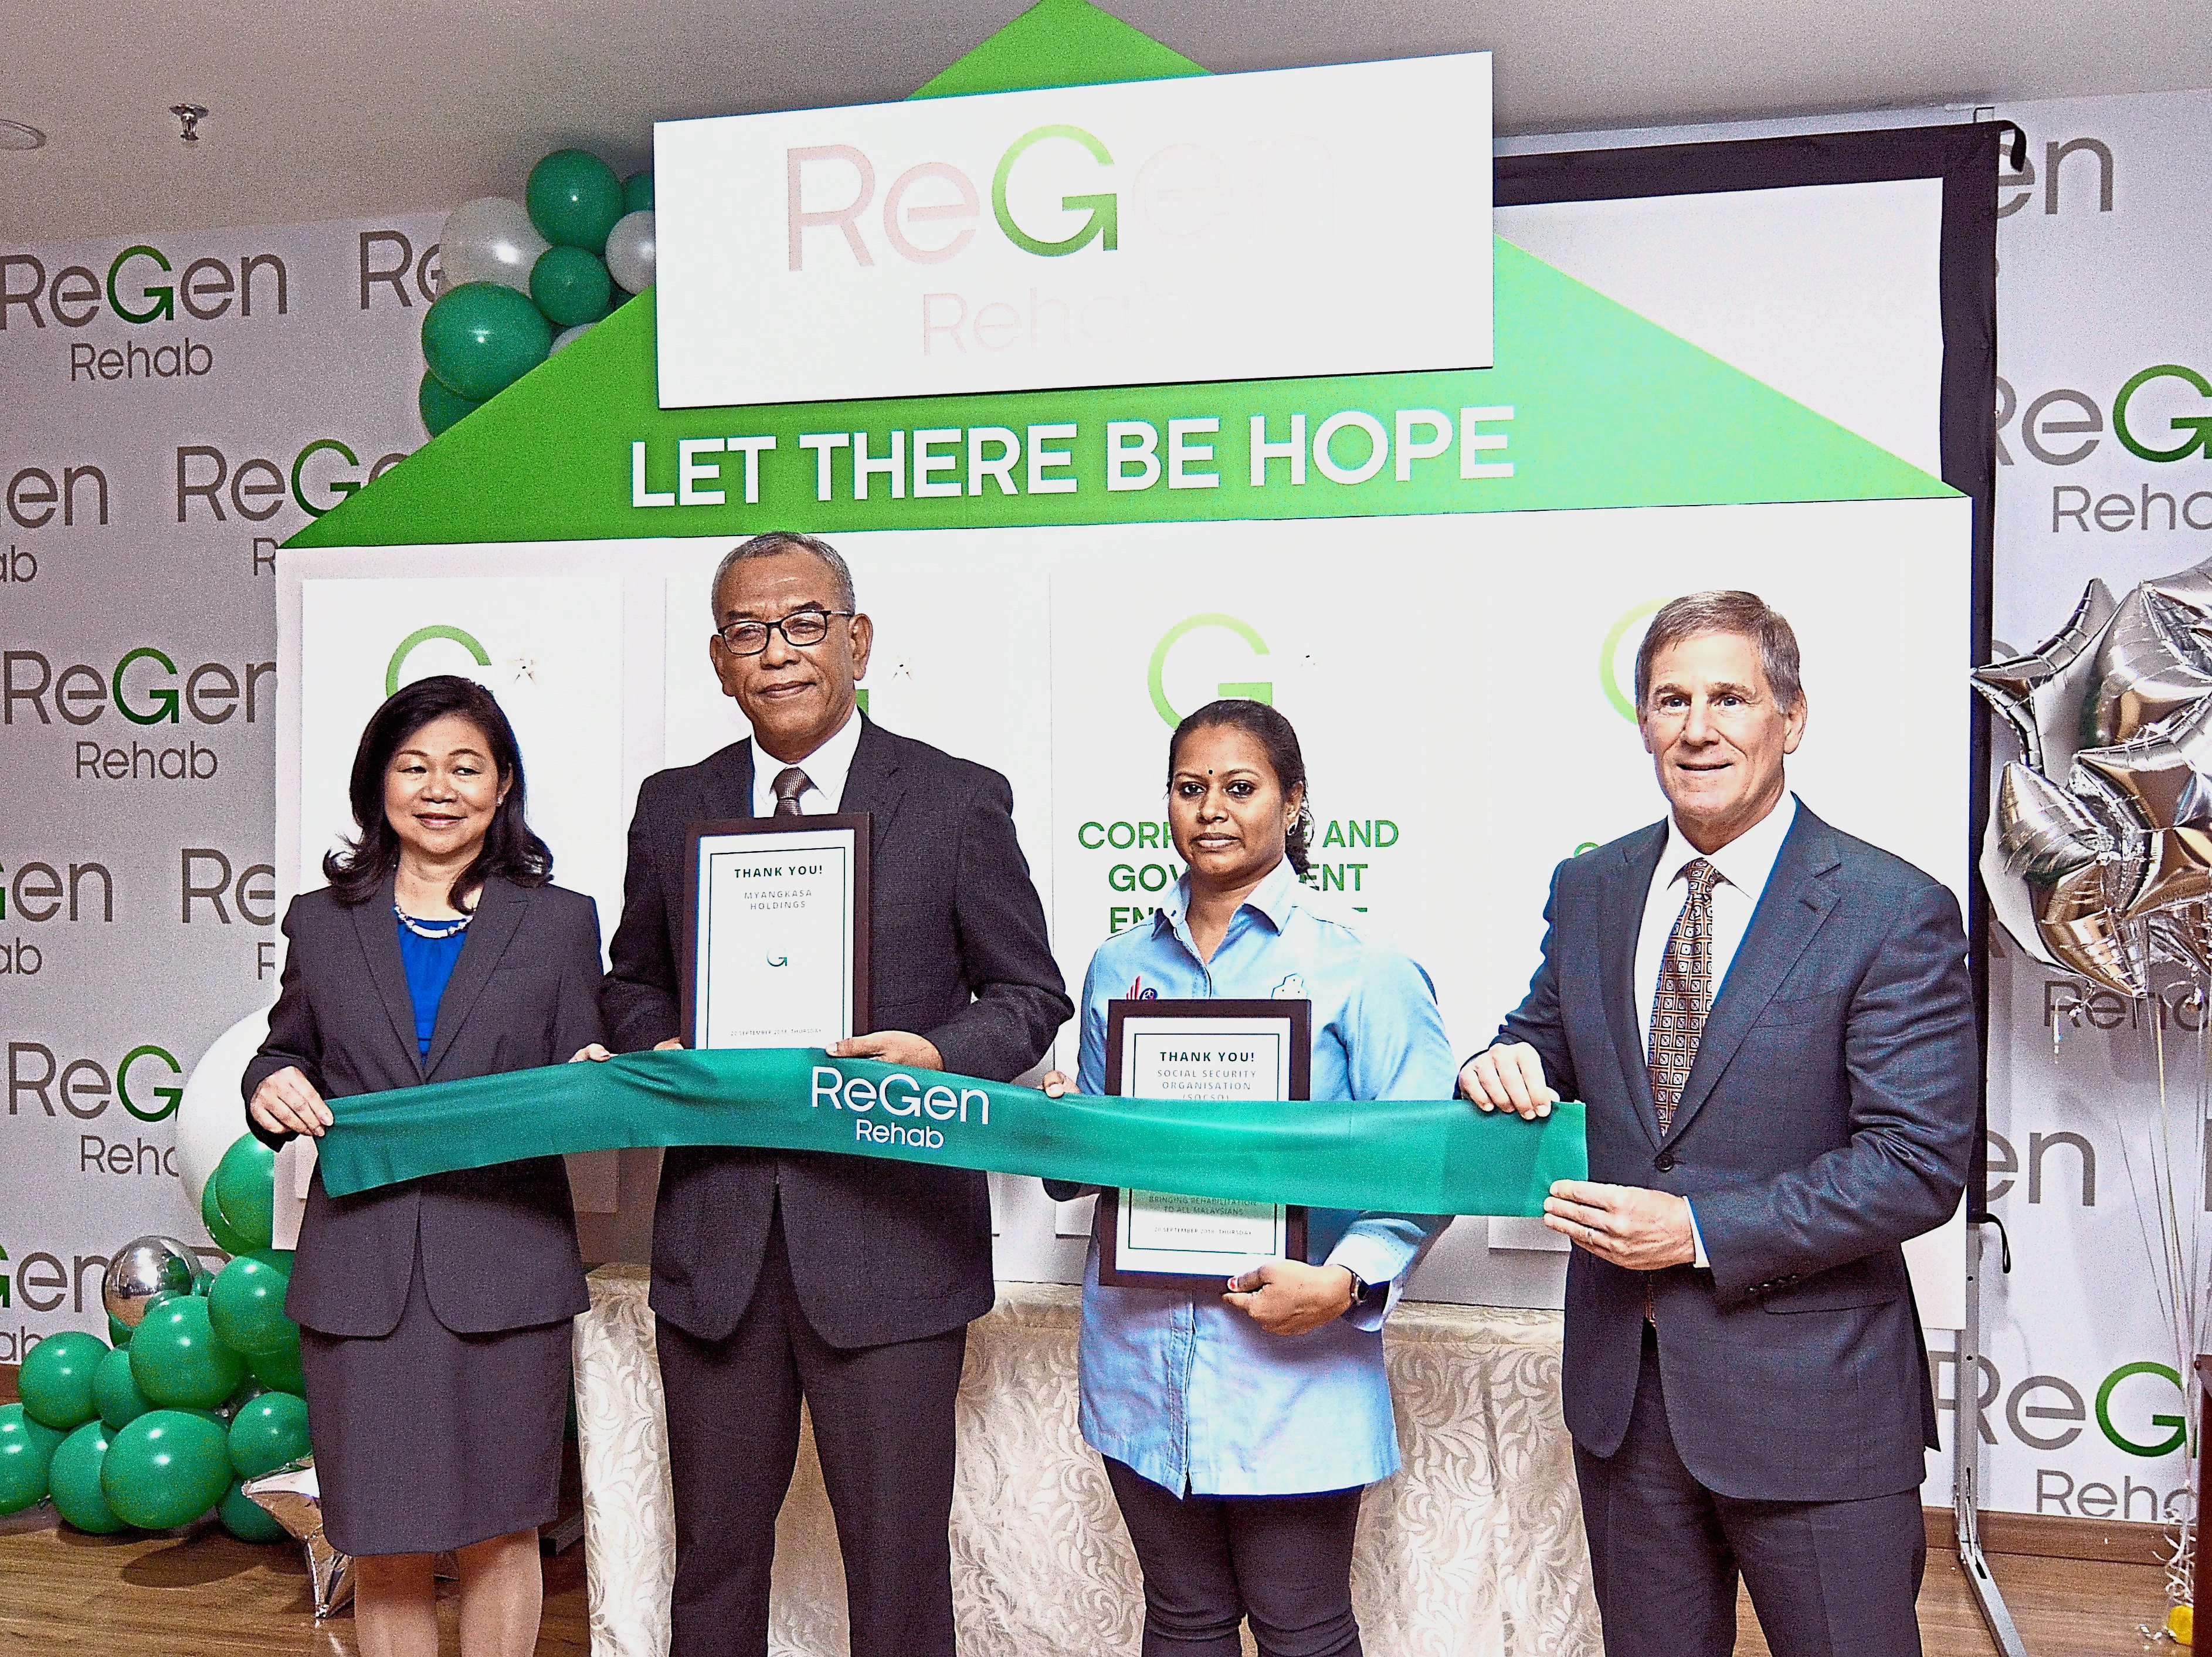 (From left) Lee, MyANGKASA Holdings Sdn Bhd executive director and group chief executive officer Shaharuddin Mohamed, Socso Return-to-Work case manager Vimala Arumugam and ReGen Rehab board member and Select Medical Holdings corporation co-founder and executive chairman Robert Ortenzio launching the new rehabilitation hospital.